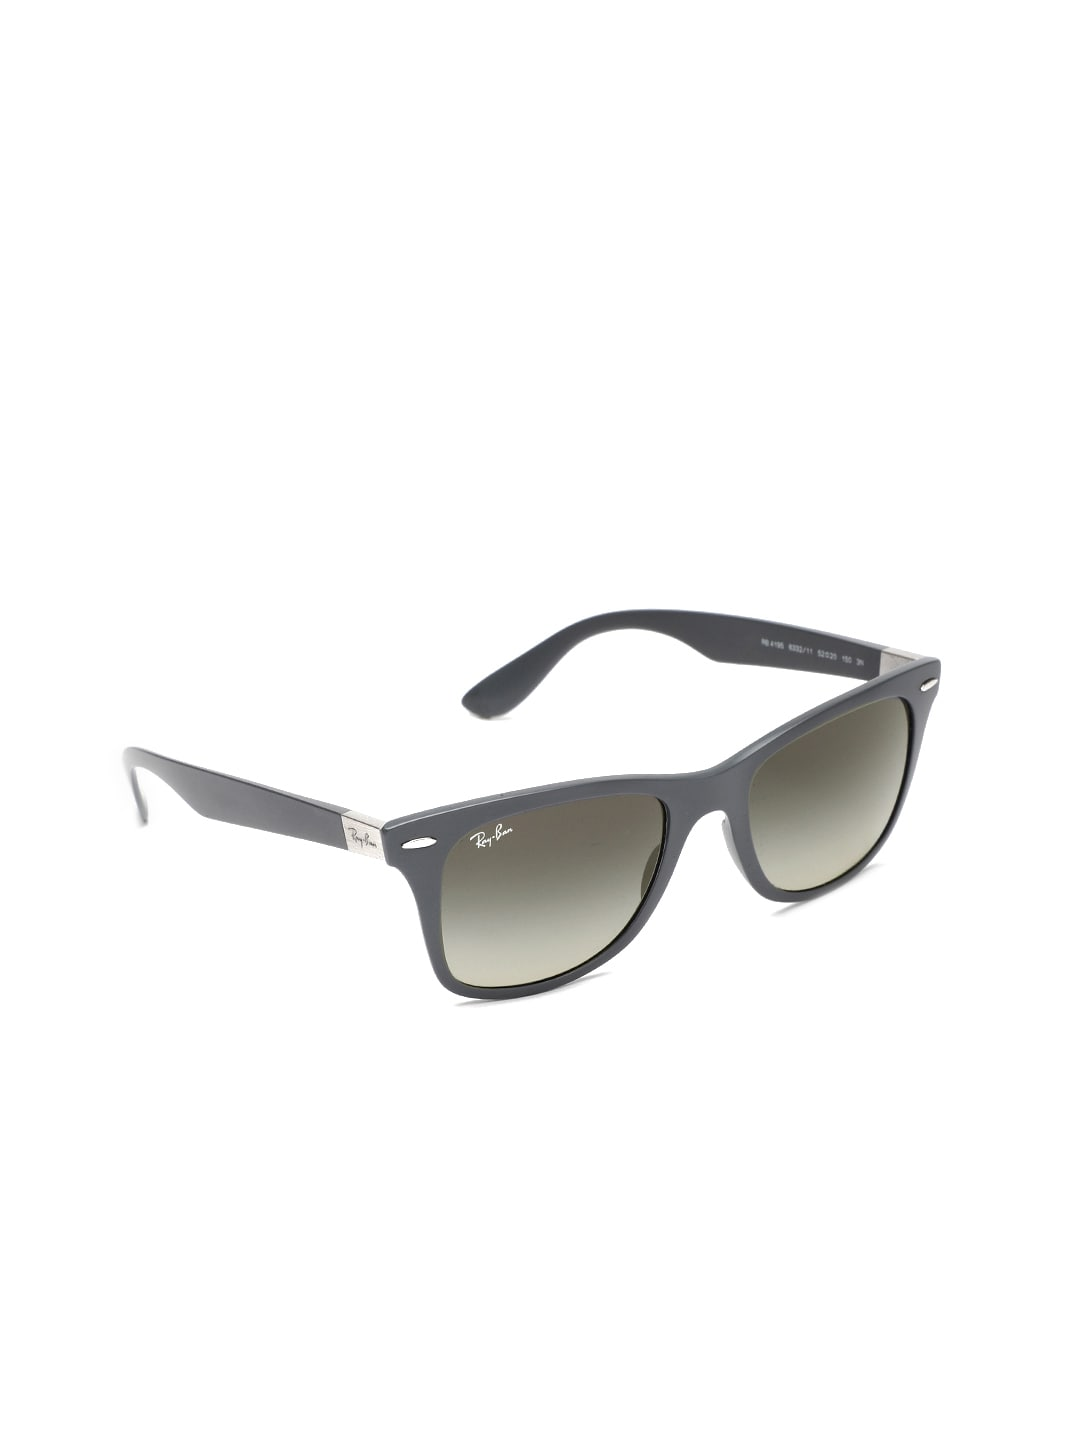 be8a55f821 Ray Ban Police Sunglasses - Buy Ray Ban Police Sunglasses online in India